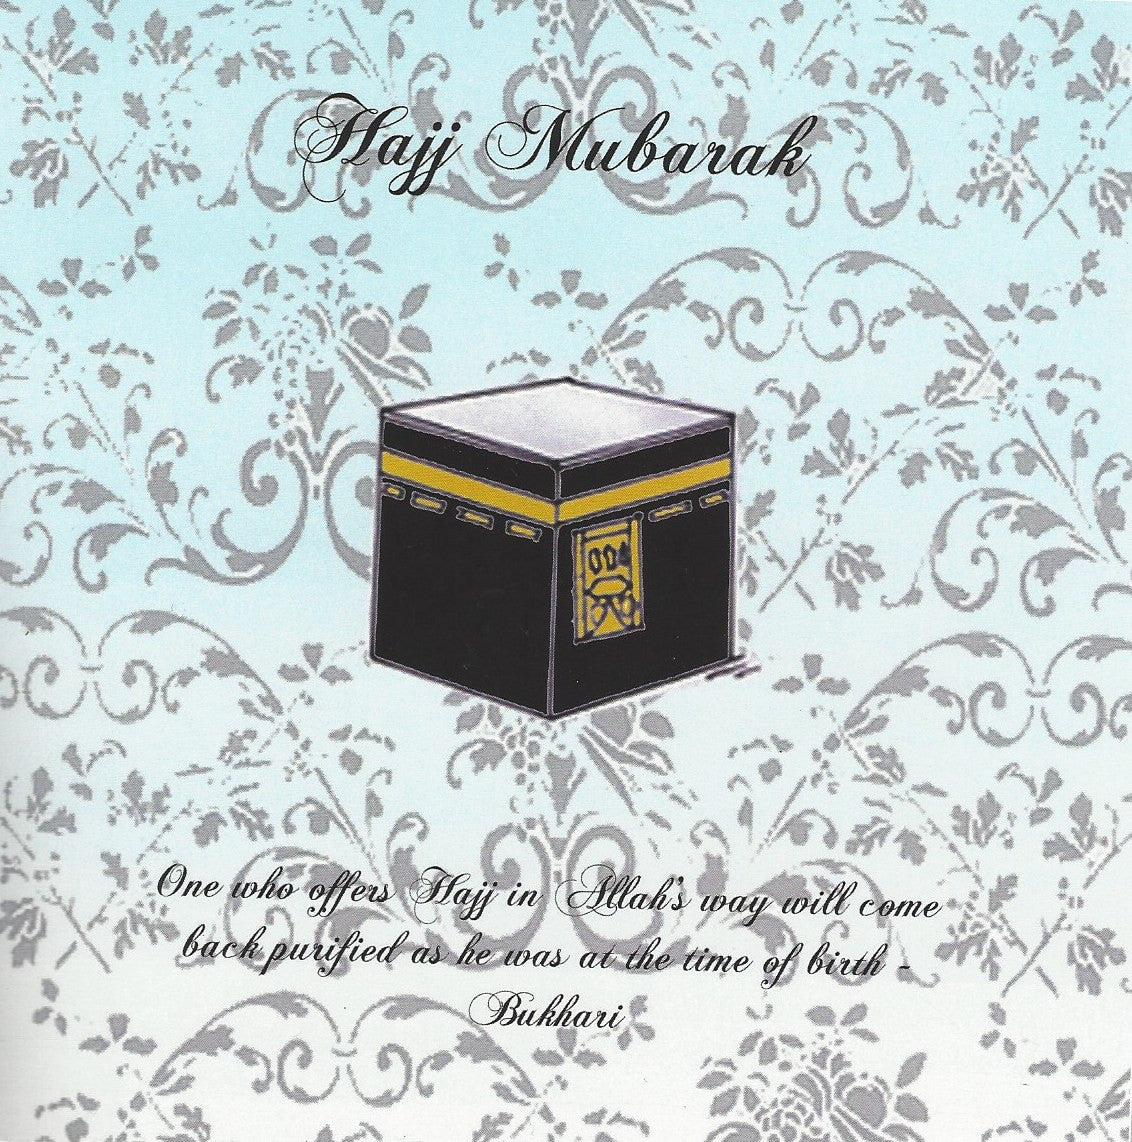 Hajj Mubarak Blue, Islamic Cards - Daybreak International Bookstore, Daybreak Press Global Bookshop  - 2